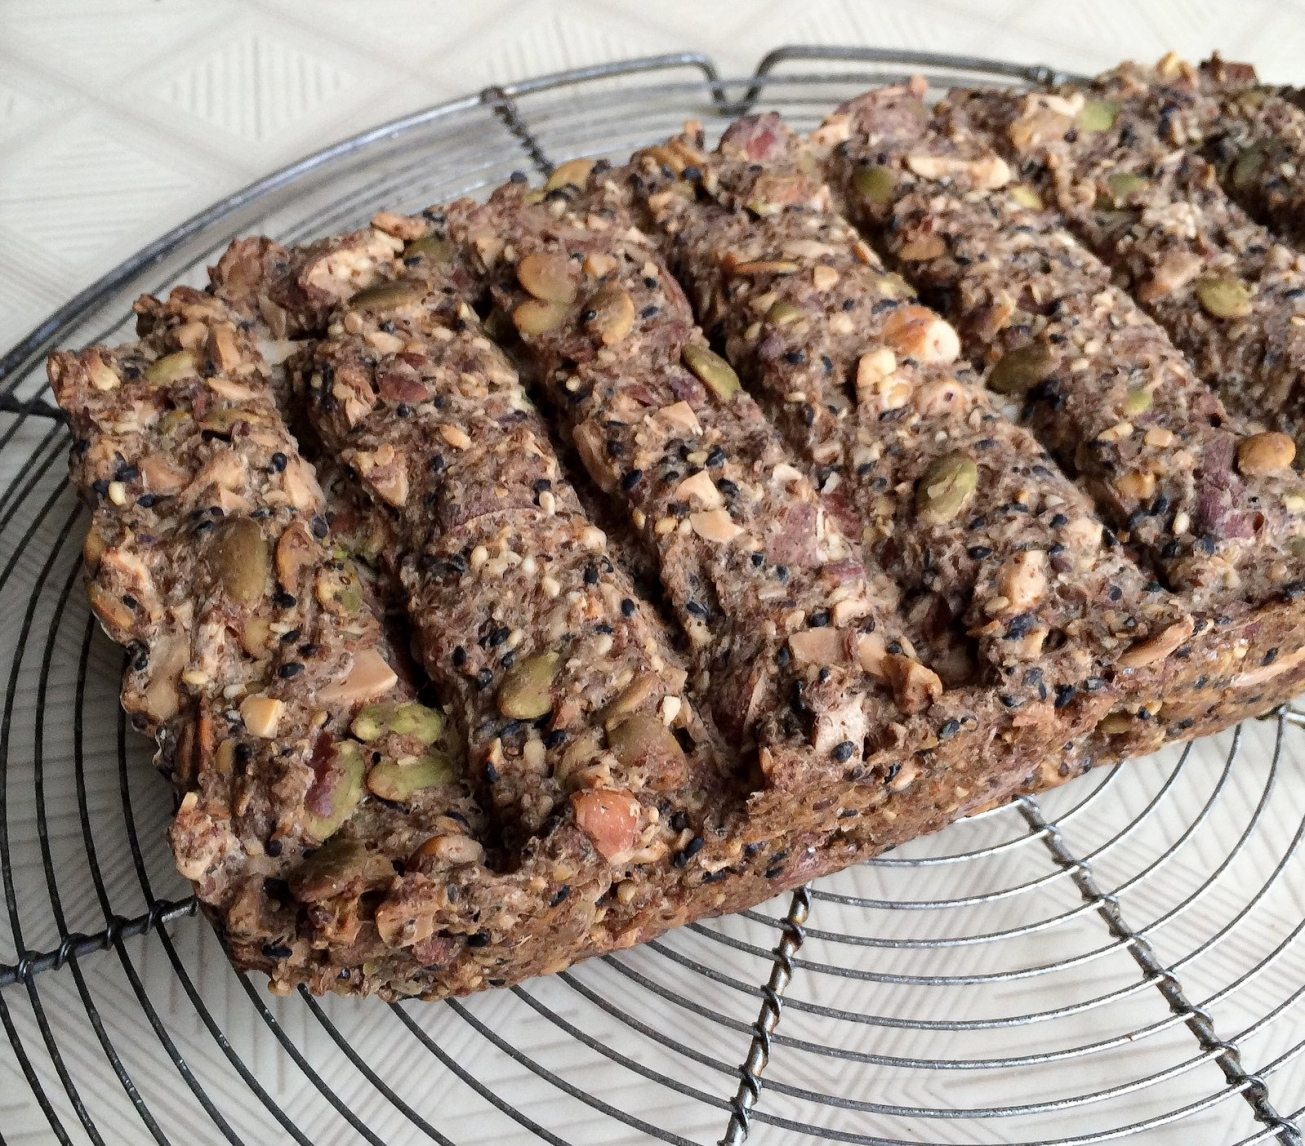 seed and nut bread by Claudette Man aka mum